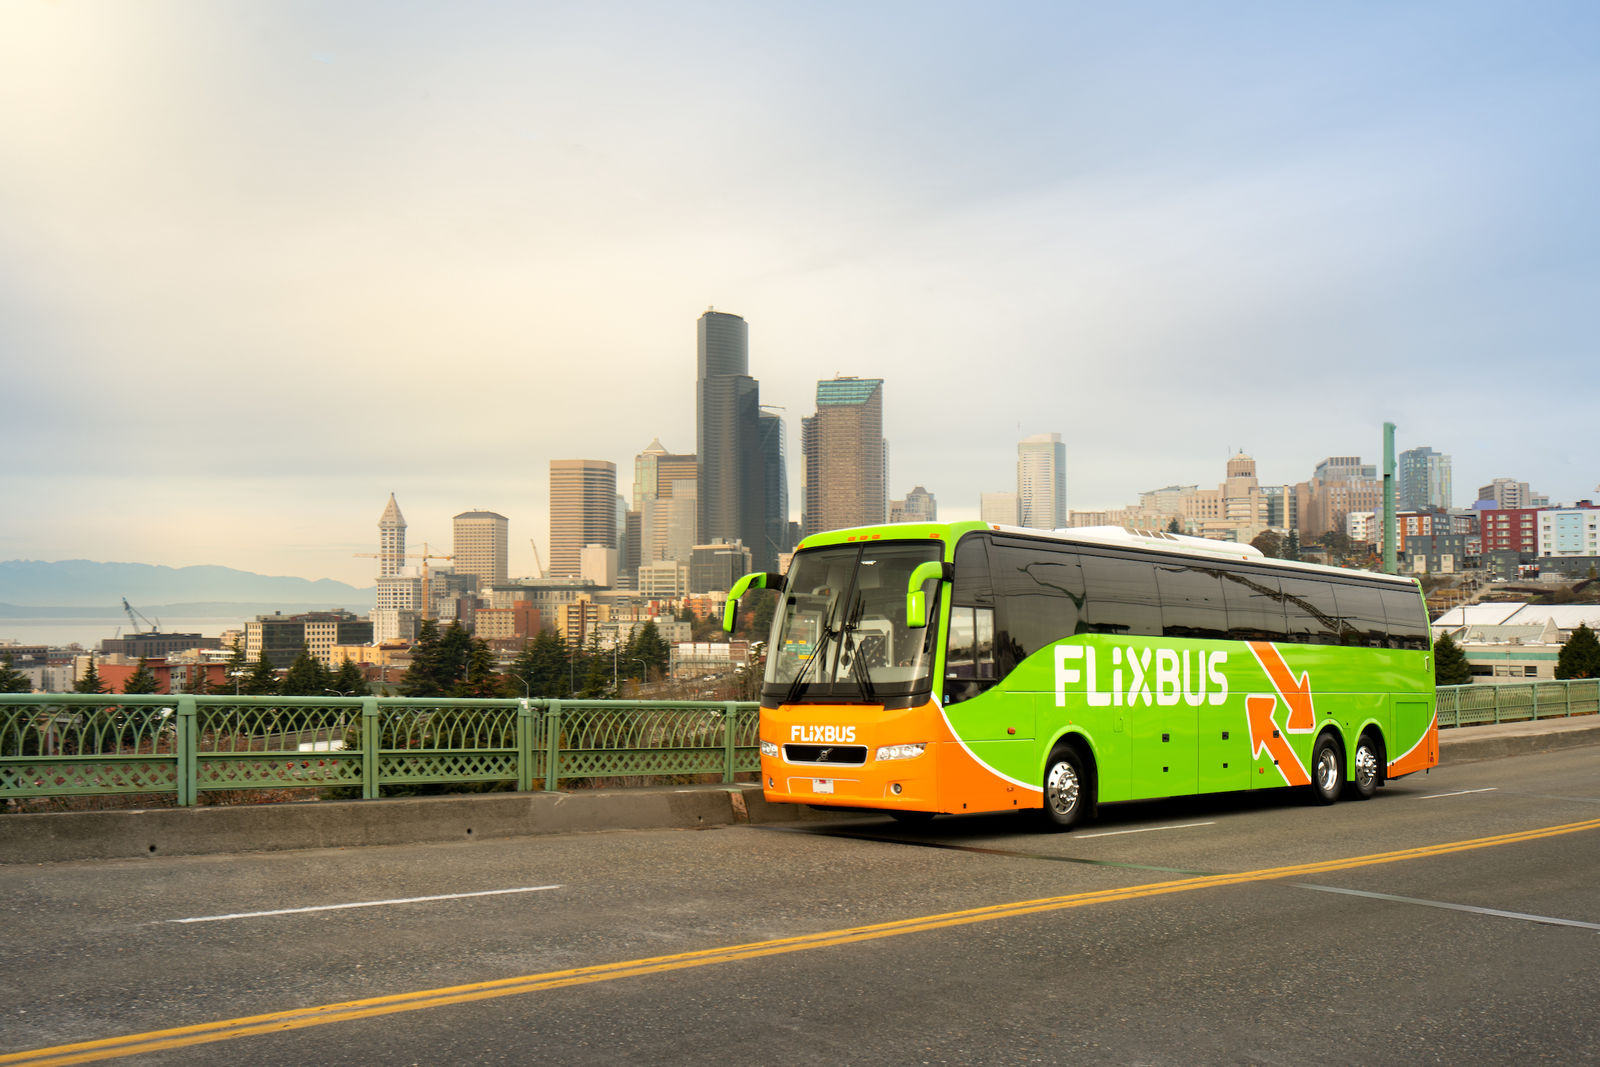 <p>FlixBus plans to launch service on Thursday, with fares starting at $9.99. The company will offer four trips in each direction daily between Eugene and Portland, with stops on both the University of Oregon and Oregon State University campuses. (FlixBus)</p>